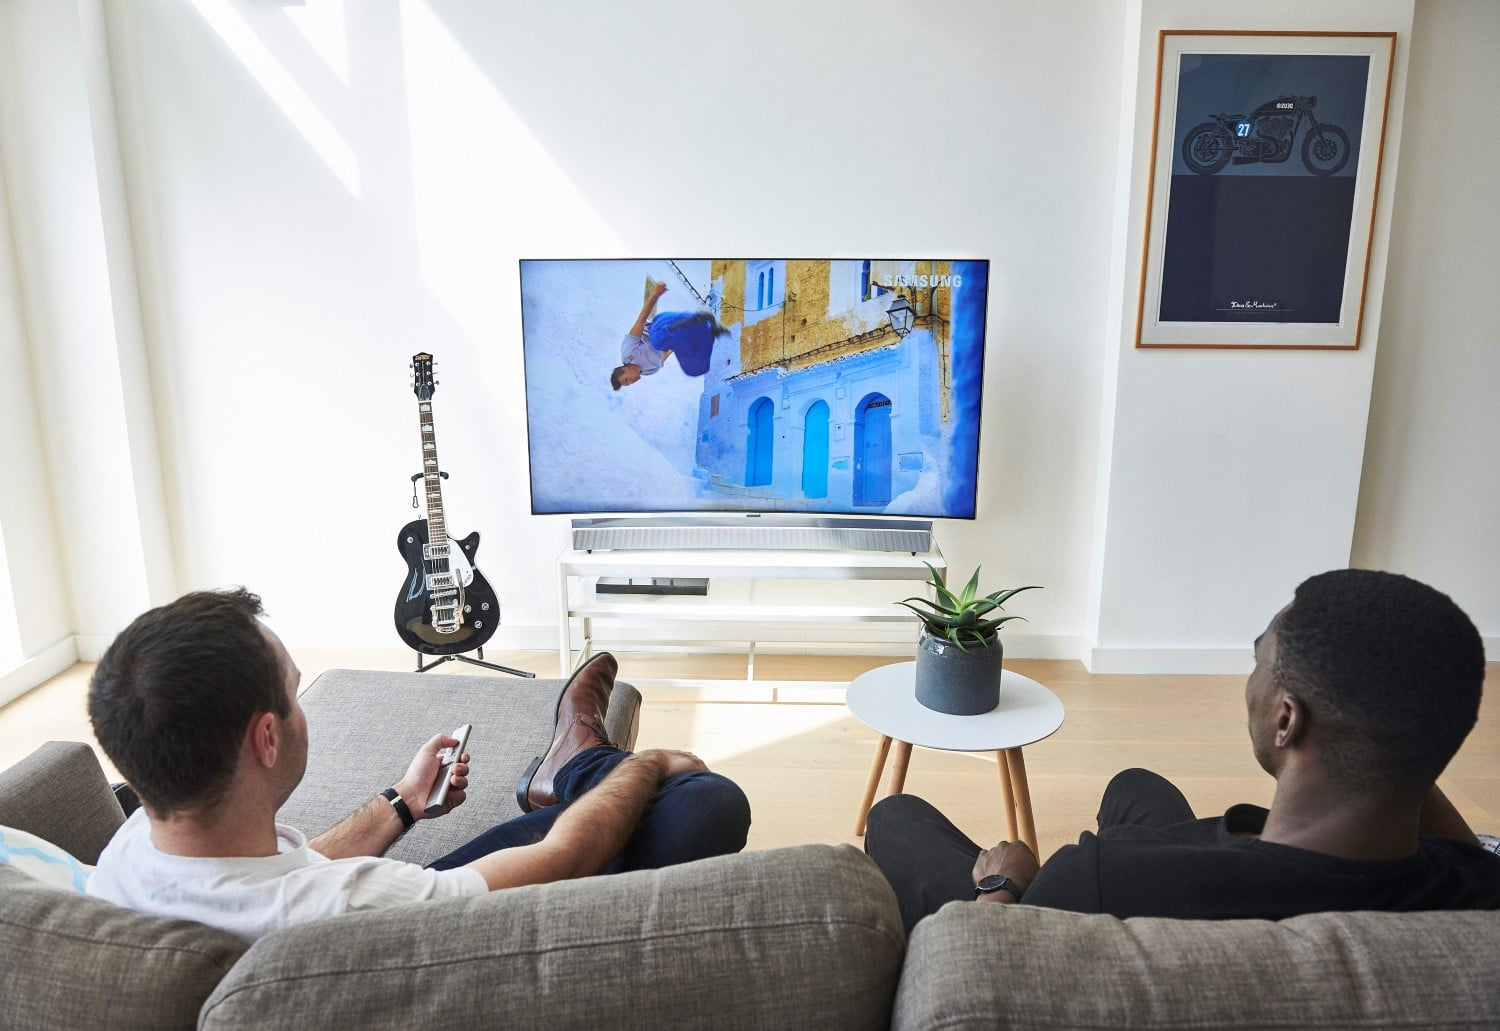 samsungs sound and soundbar uses tv room